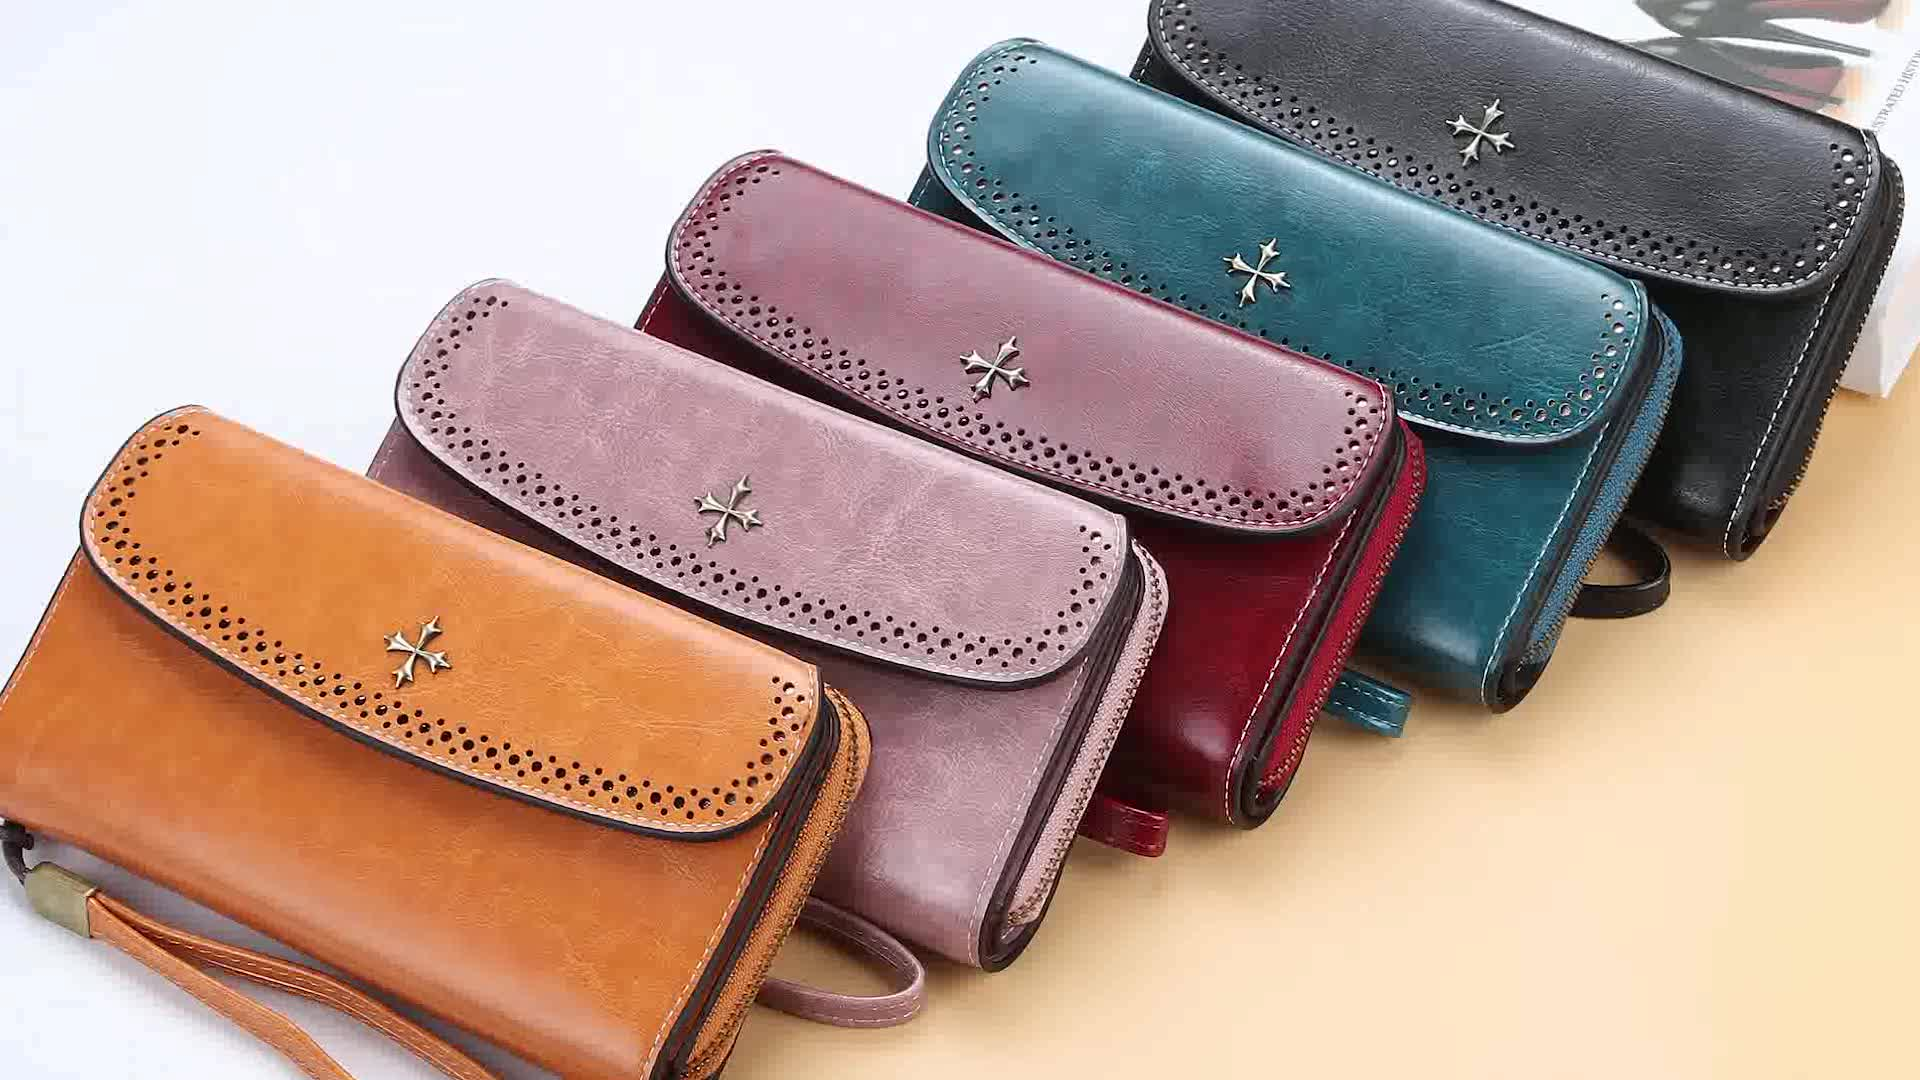 Baellerry 2019 New Style Fashion Long Section Clutch Wallet For Women With Handle Strap,Lady Four-leaf clover Wallet